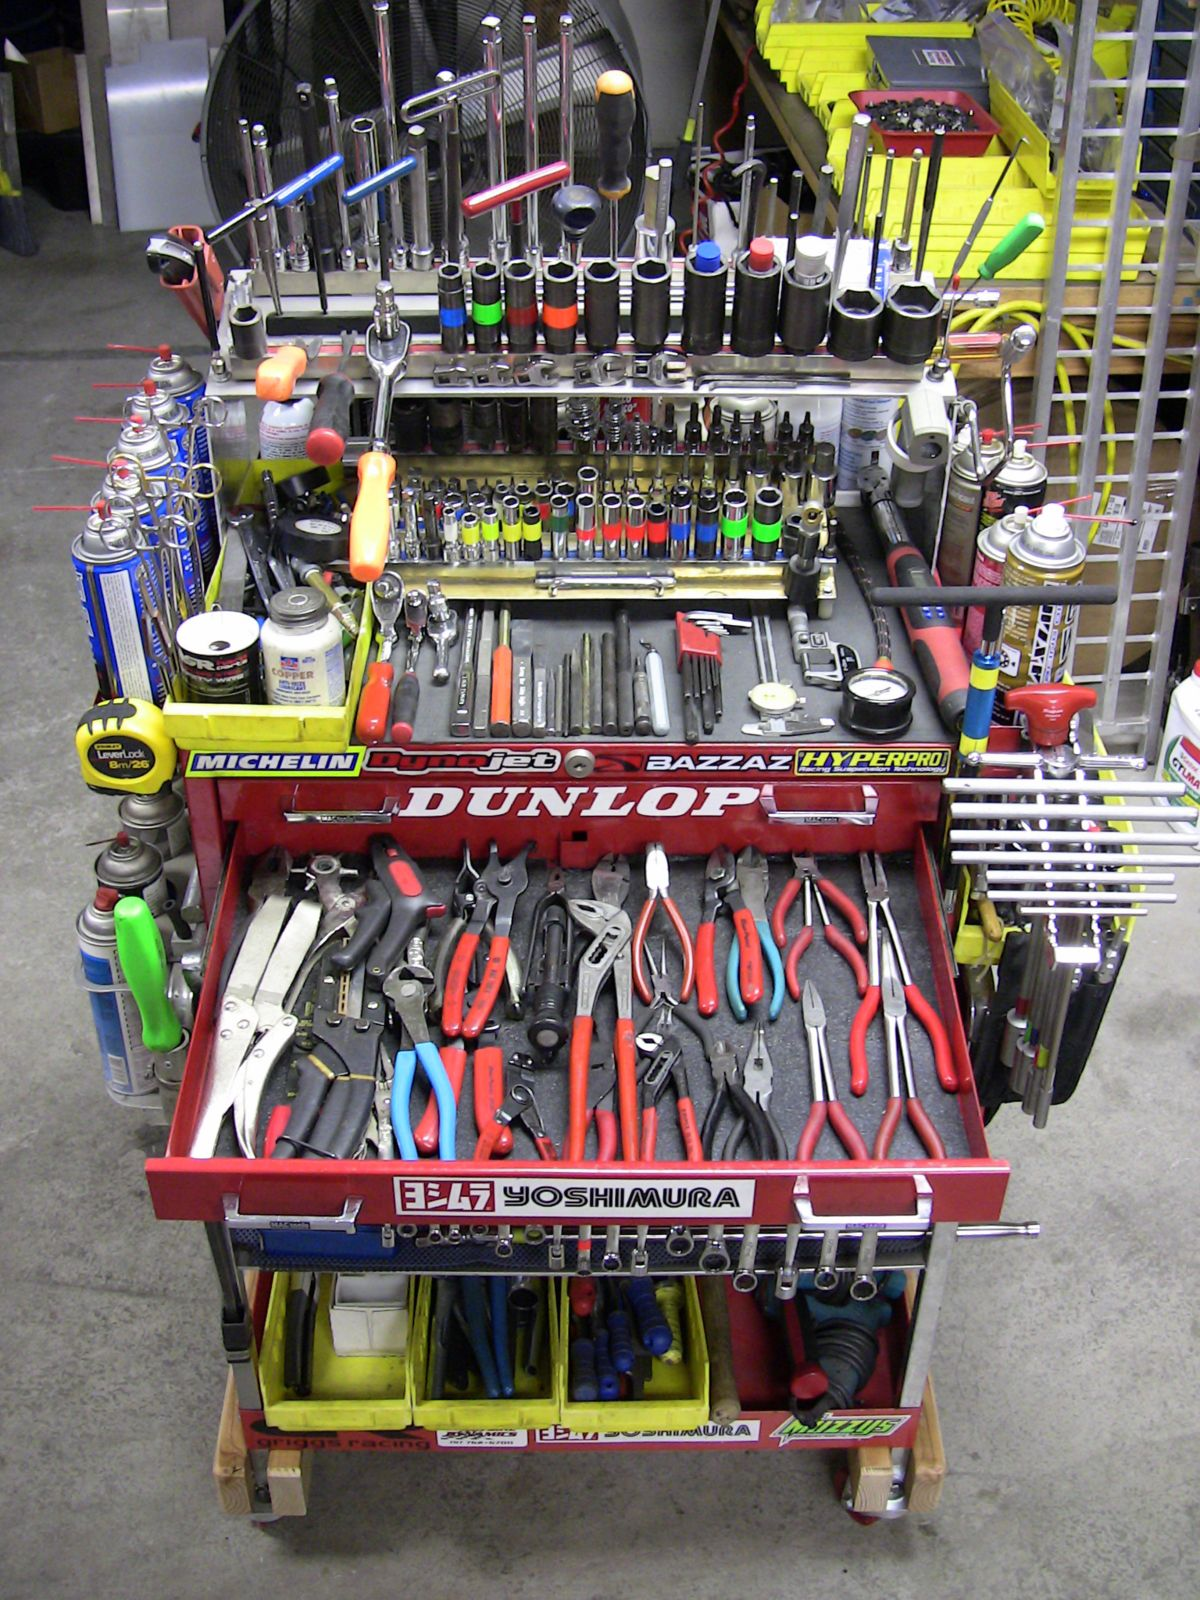 Super Tuned Tool Cart Pics Motorcycle Purposed